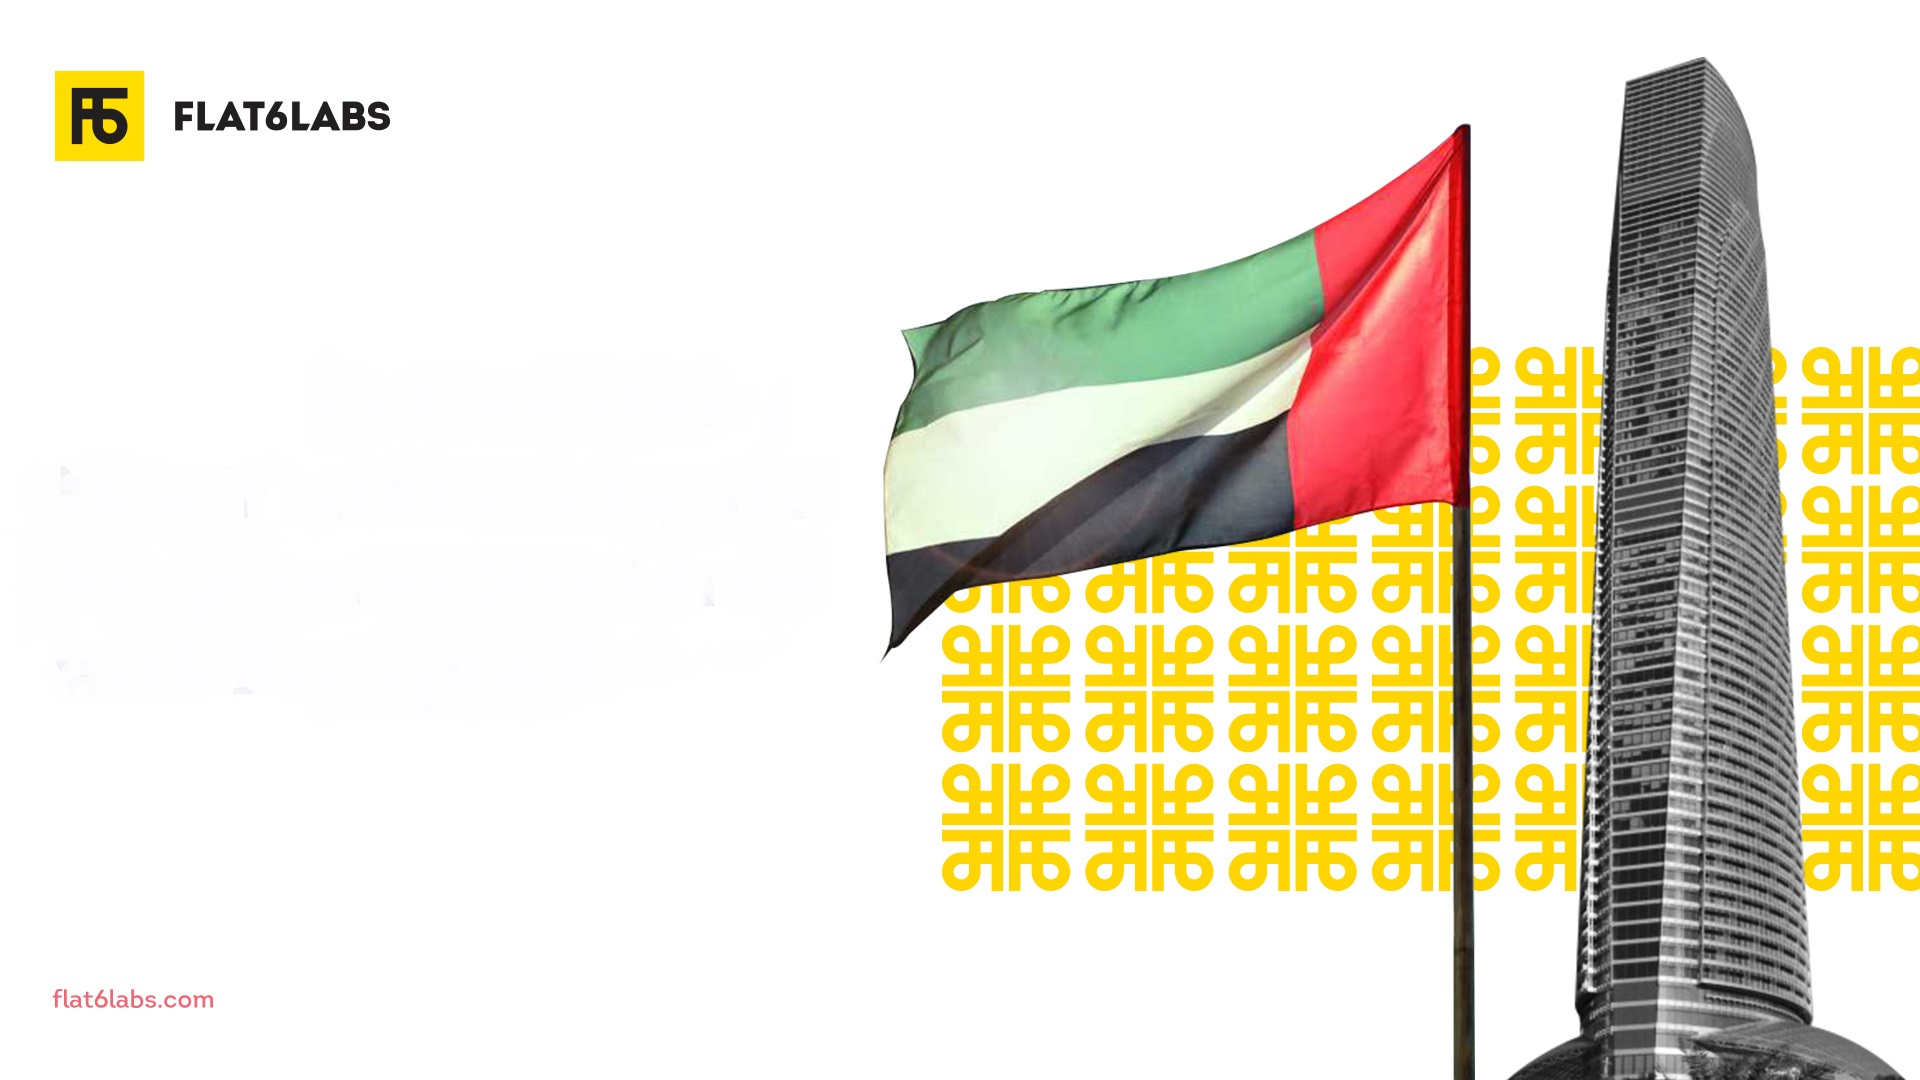 Flat6Labs, renowned MENA Accelerator and Startup Investor, is expanding its UAE footprint with the Ignite initiative